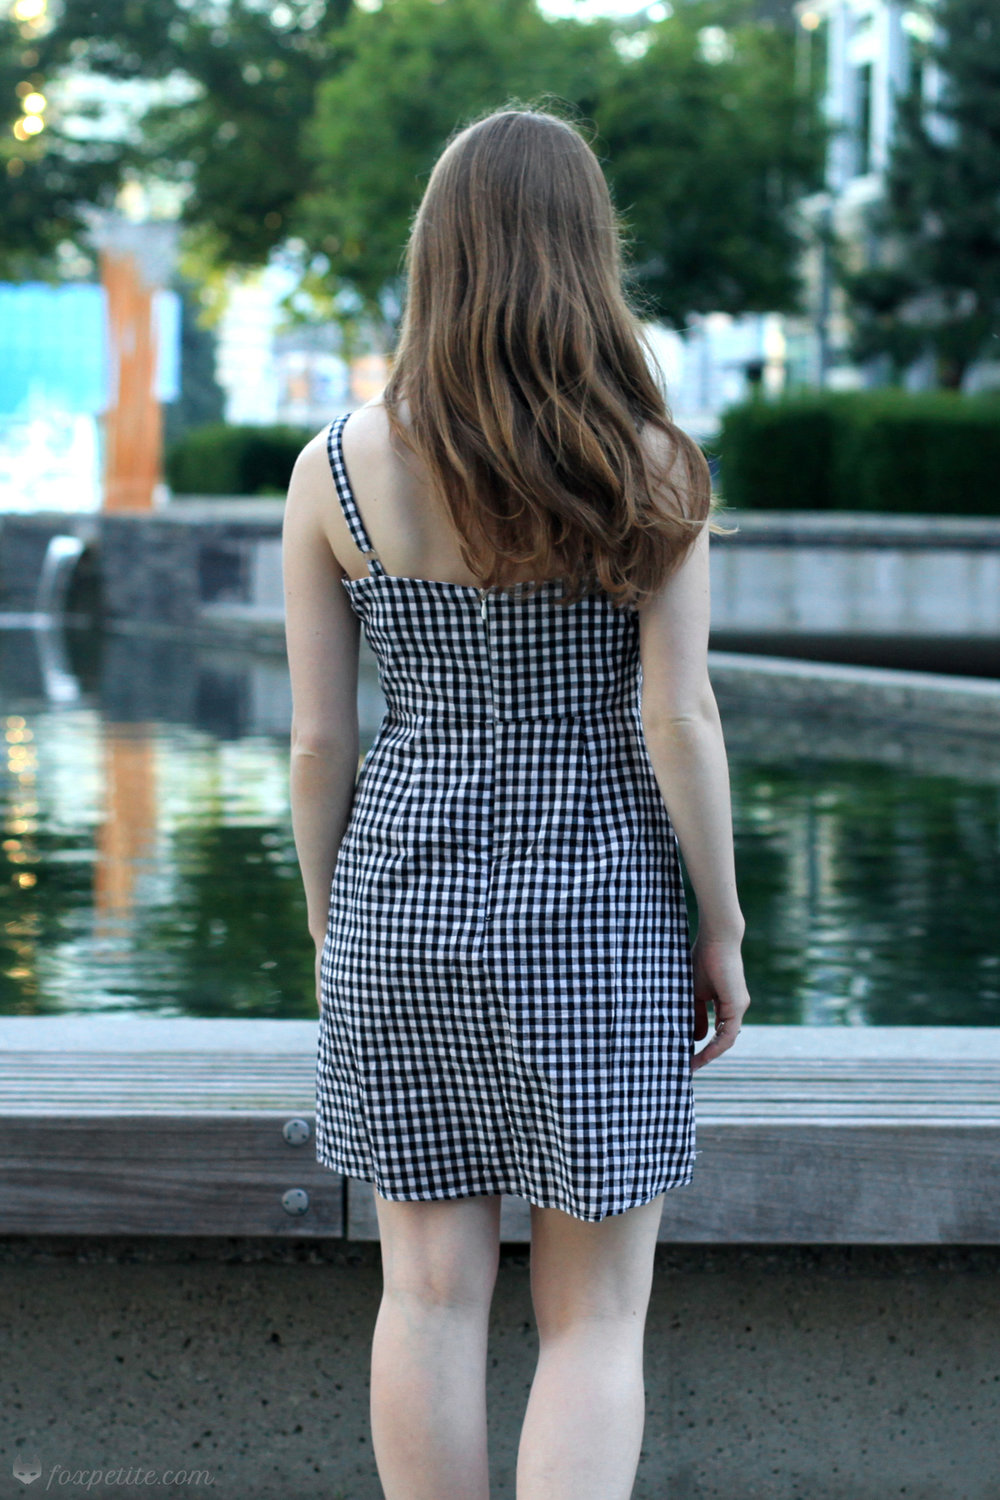 Brandy Melville Karla Dress (now available in  red plaid ,  blue and white stripes ,  black , or  white )